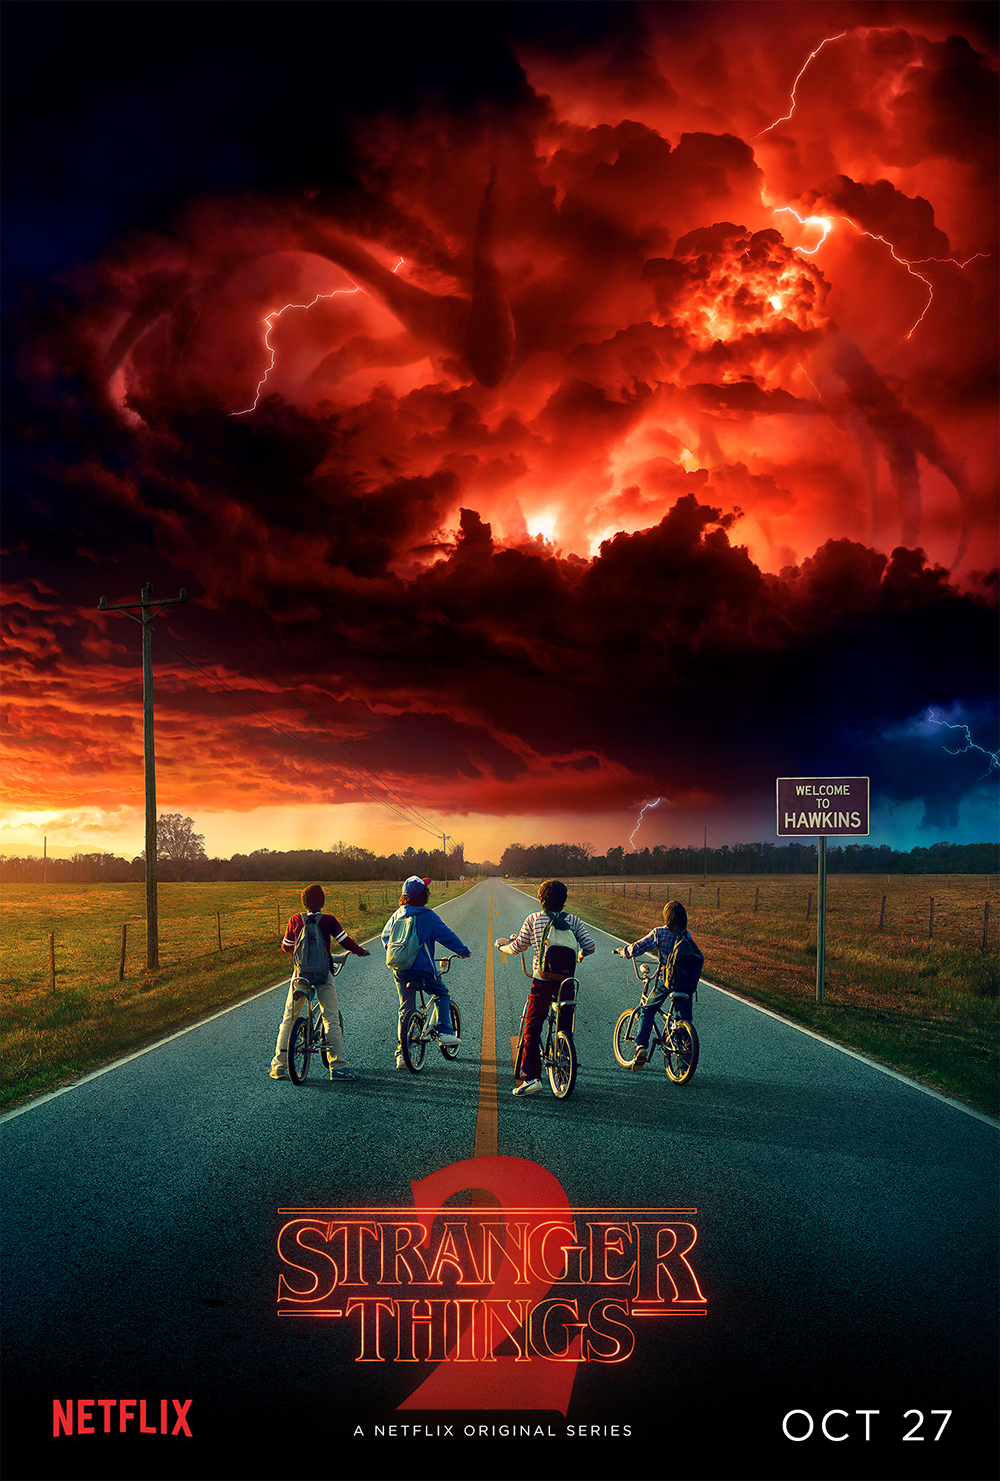 StrangerThings2_Vertical-Main_PRE_US_100dpi.jpg